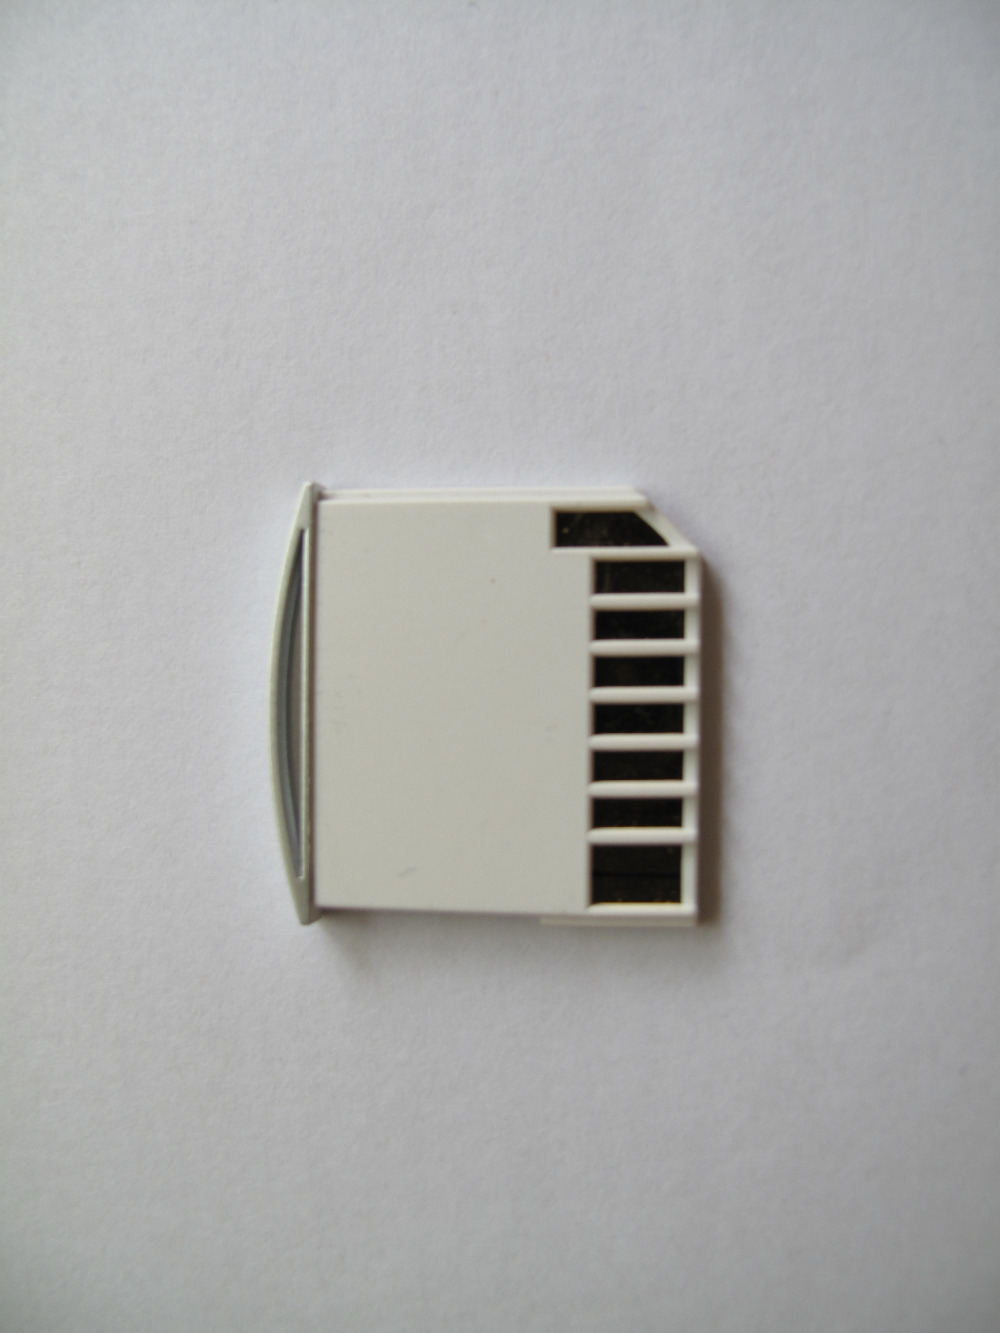 Micro Sd Sdhc Tf To Adapter For Macbook Air Pro 13 Adaptor Memory Card Reader